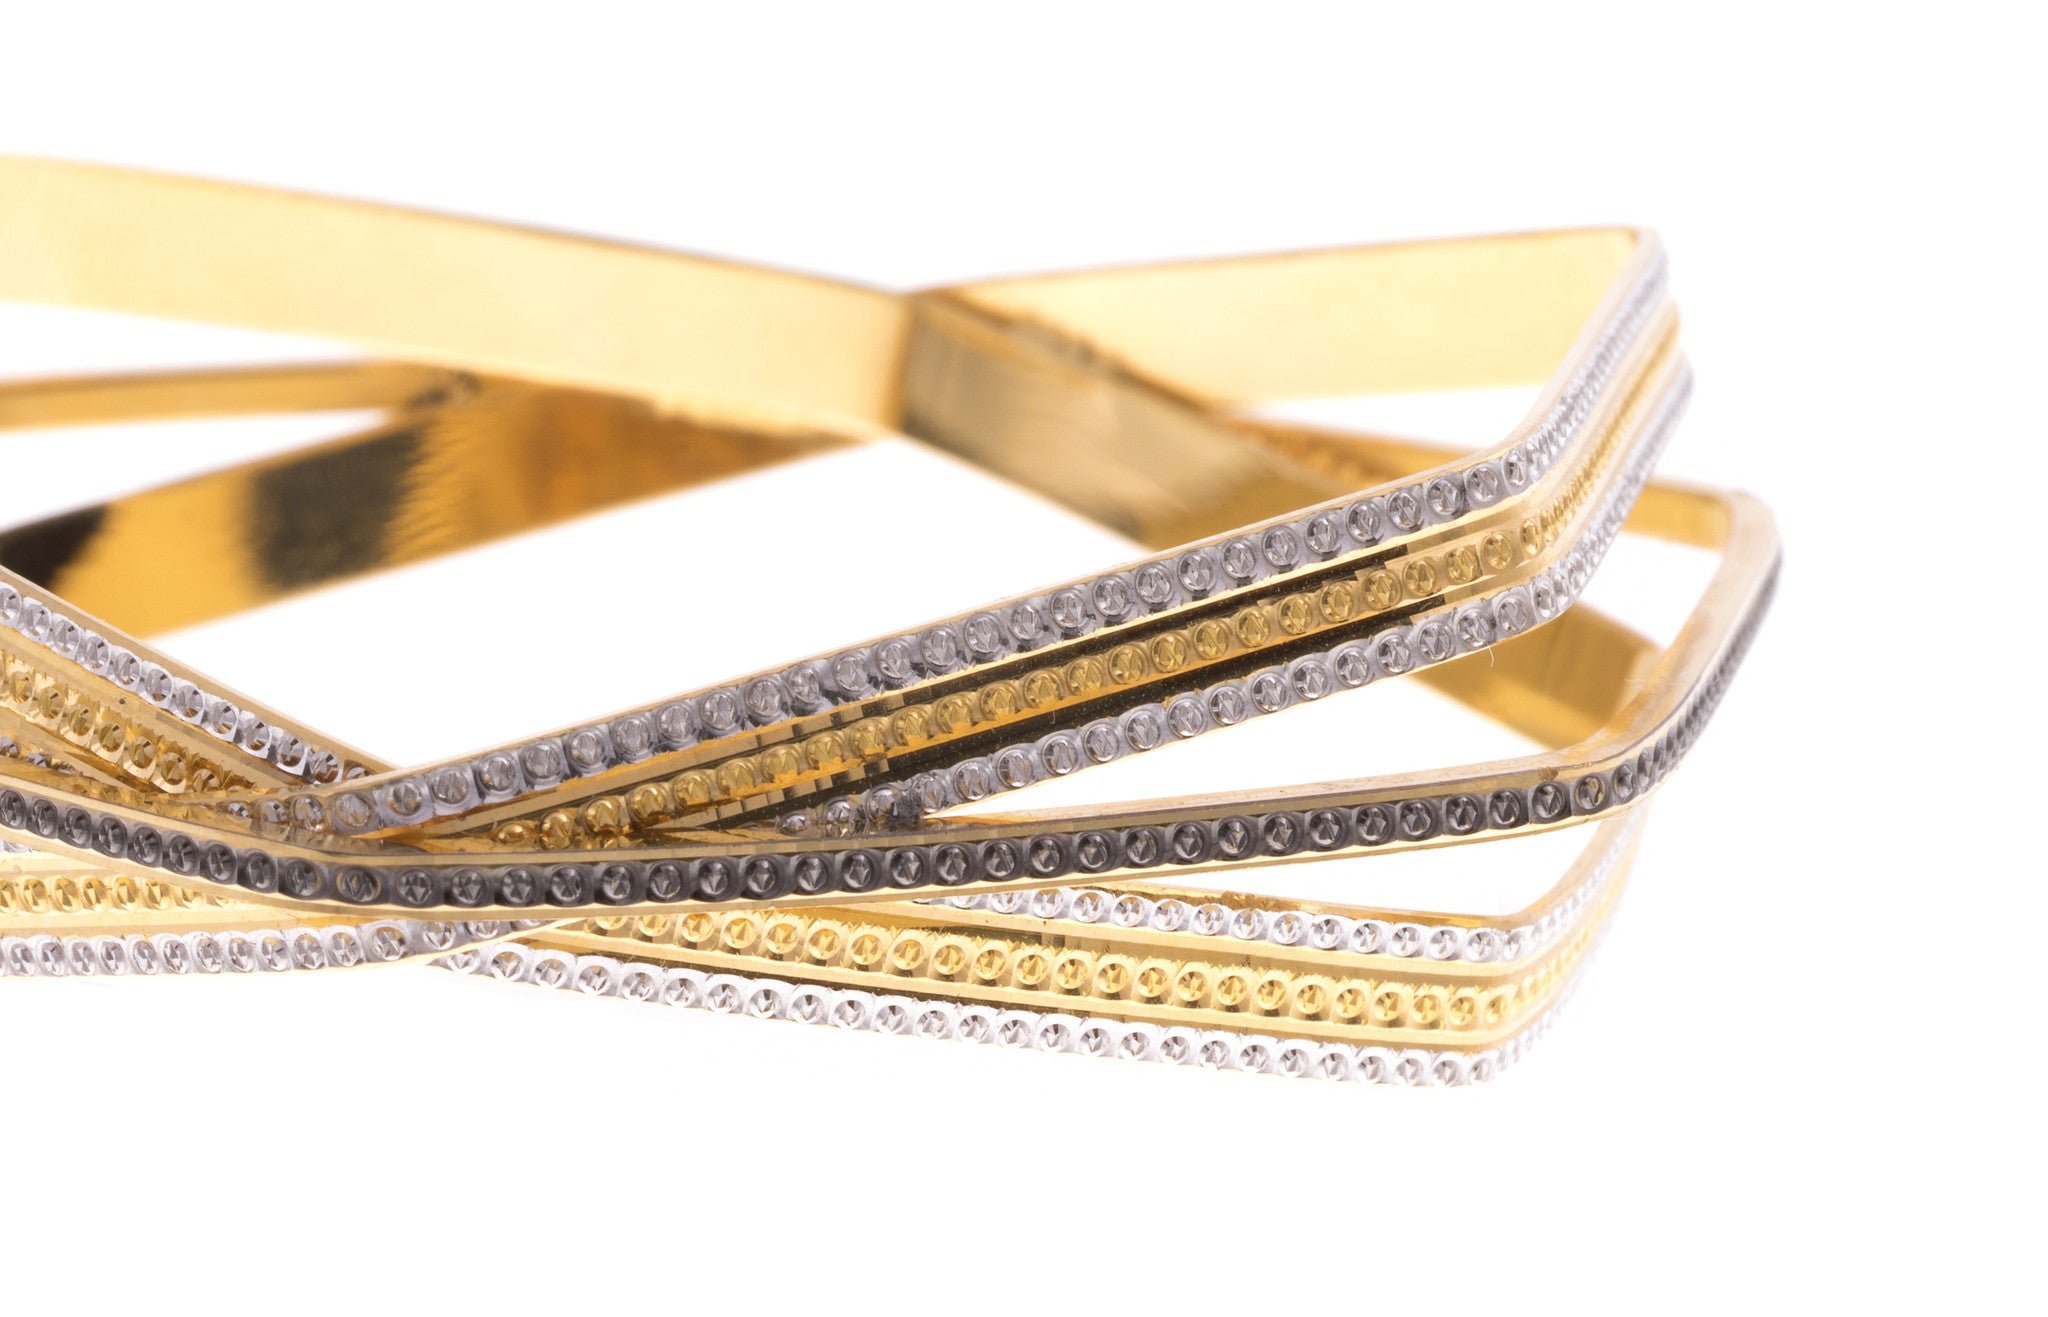 Two 22ct Yellow Gold Hexagonal Bangles with Black & White Rhodium Plating (G1897), Minar Jewellers - 7